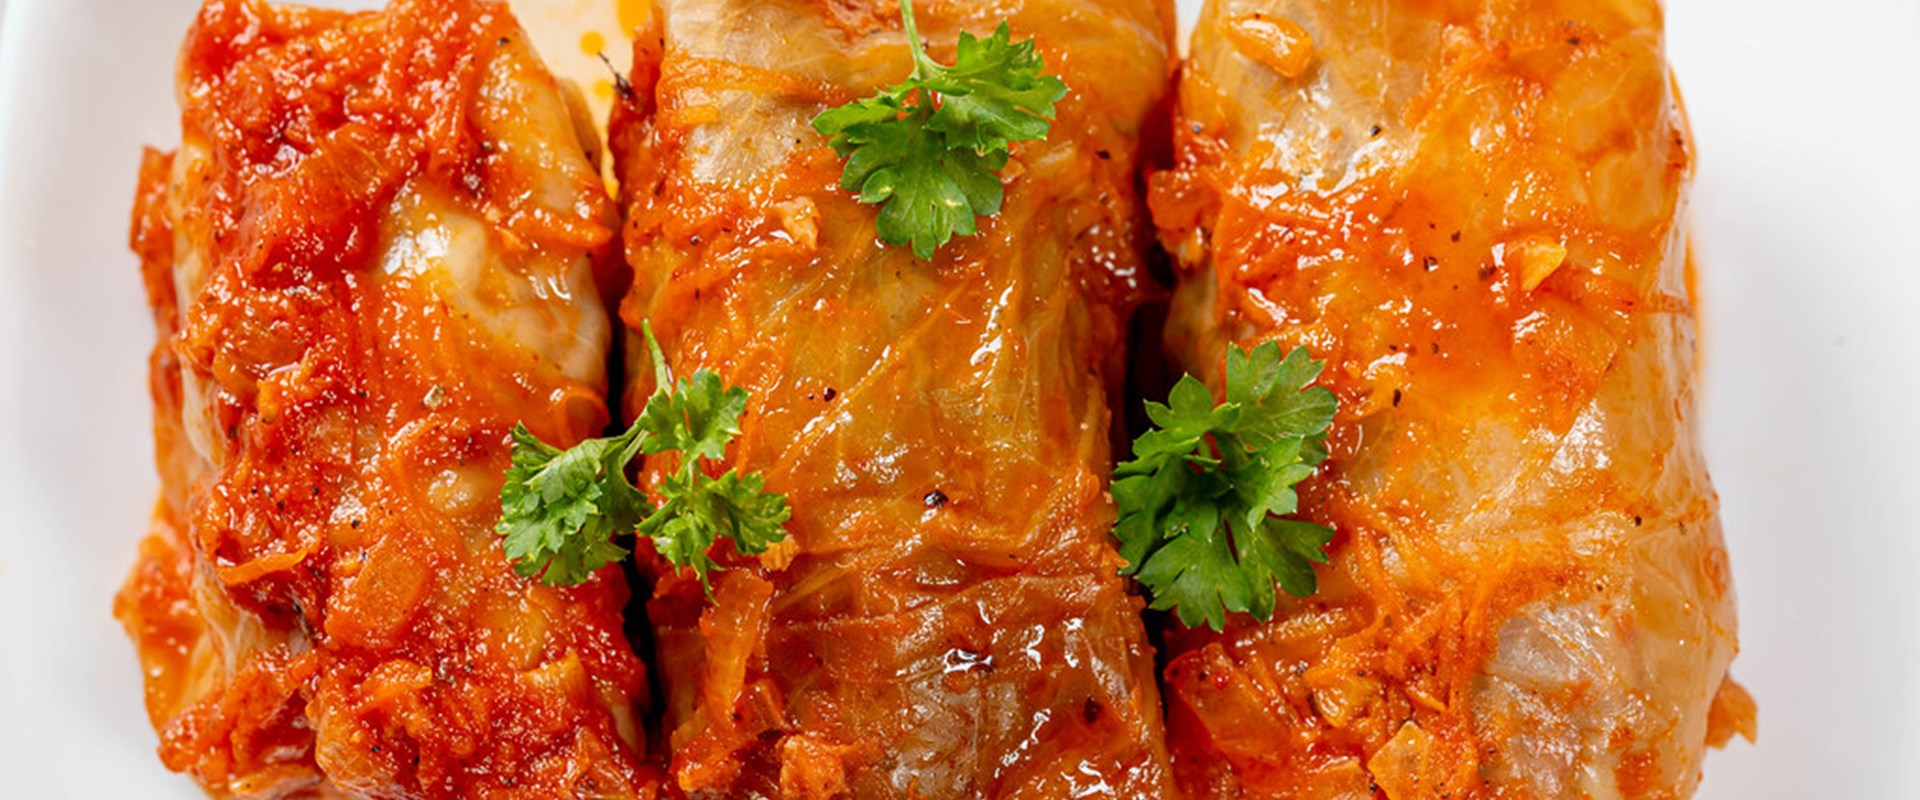 Cabbage rolls with rice and minced meat <br />